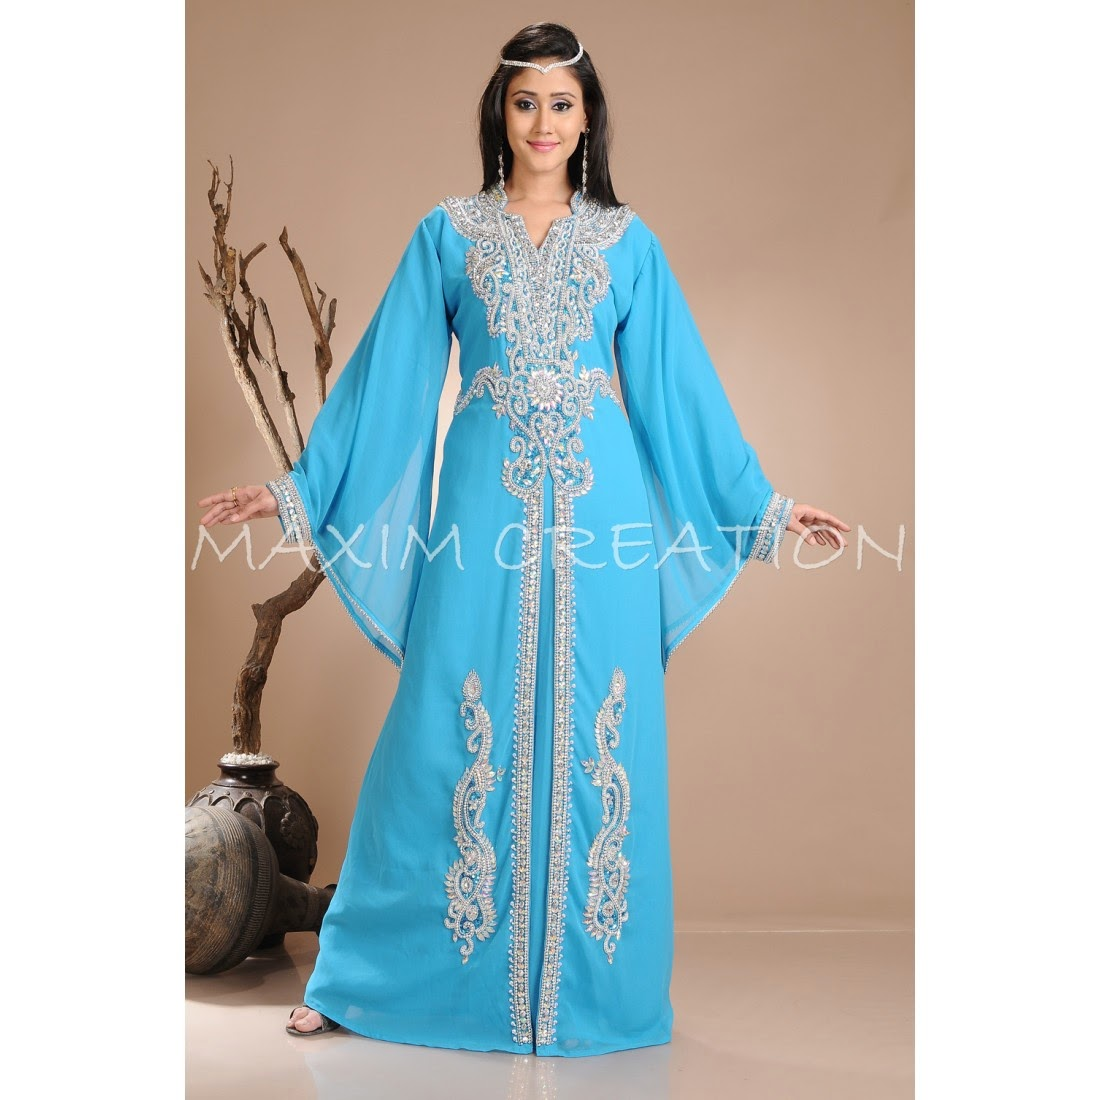 Fancy Arabian Nights Theme Party Dress Inspiration - All Wedding ...